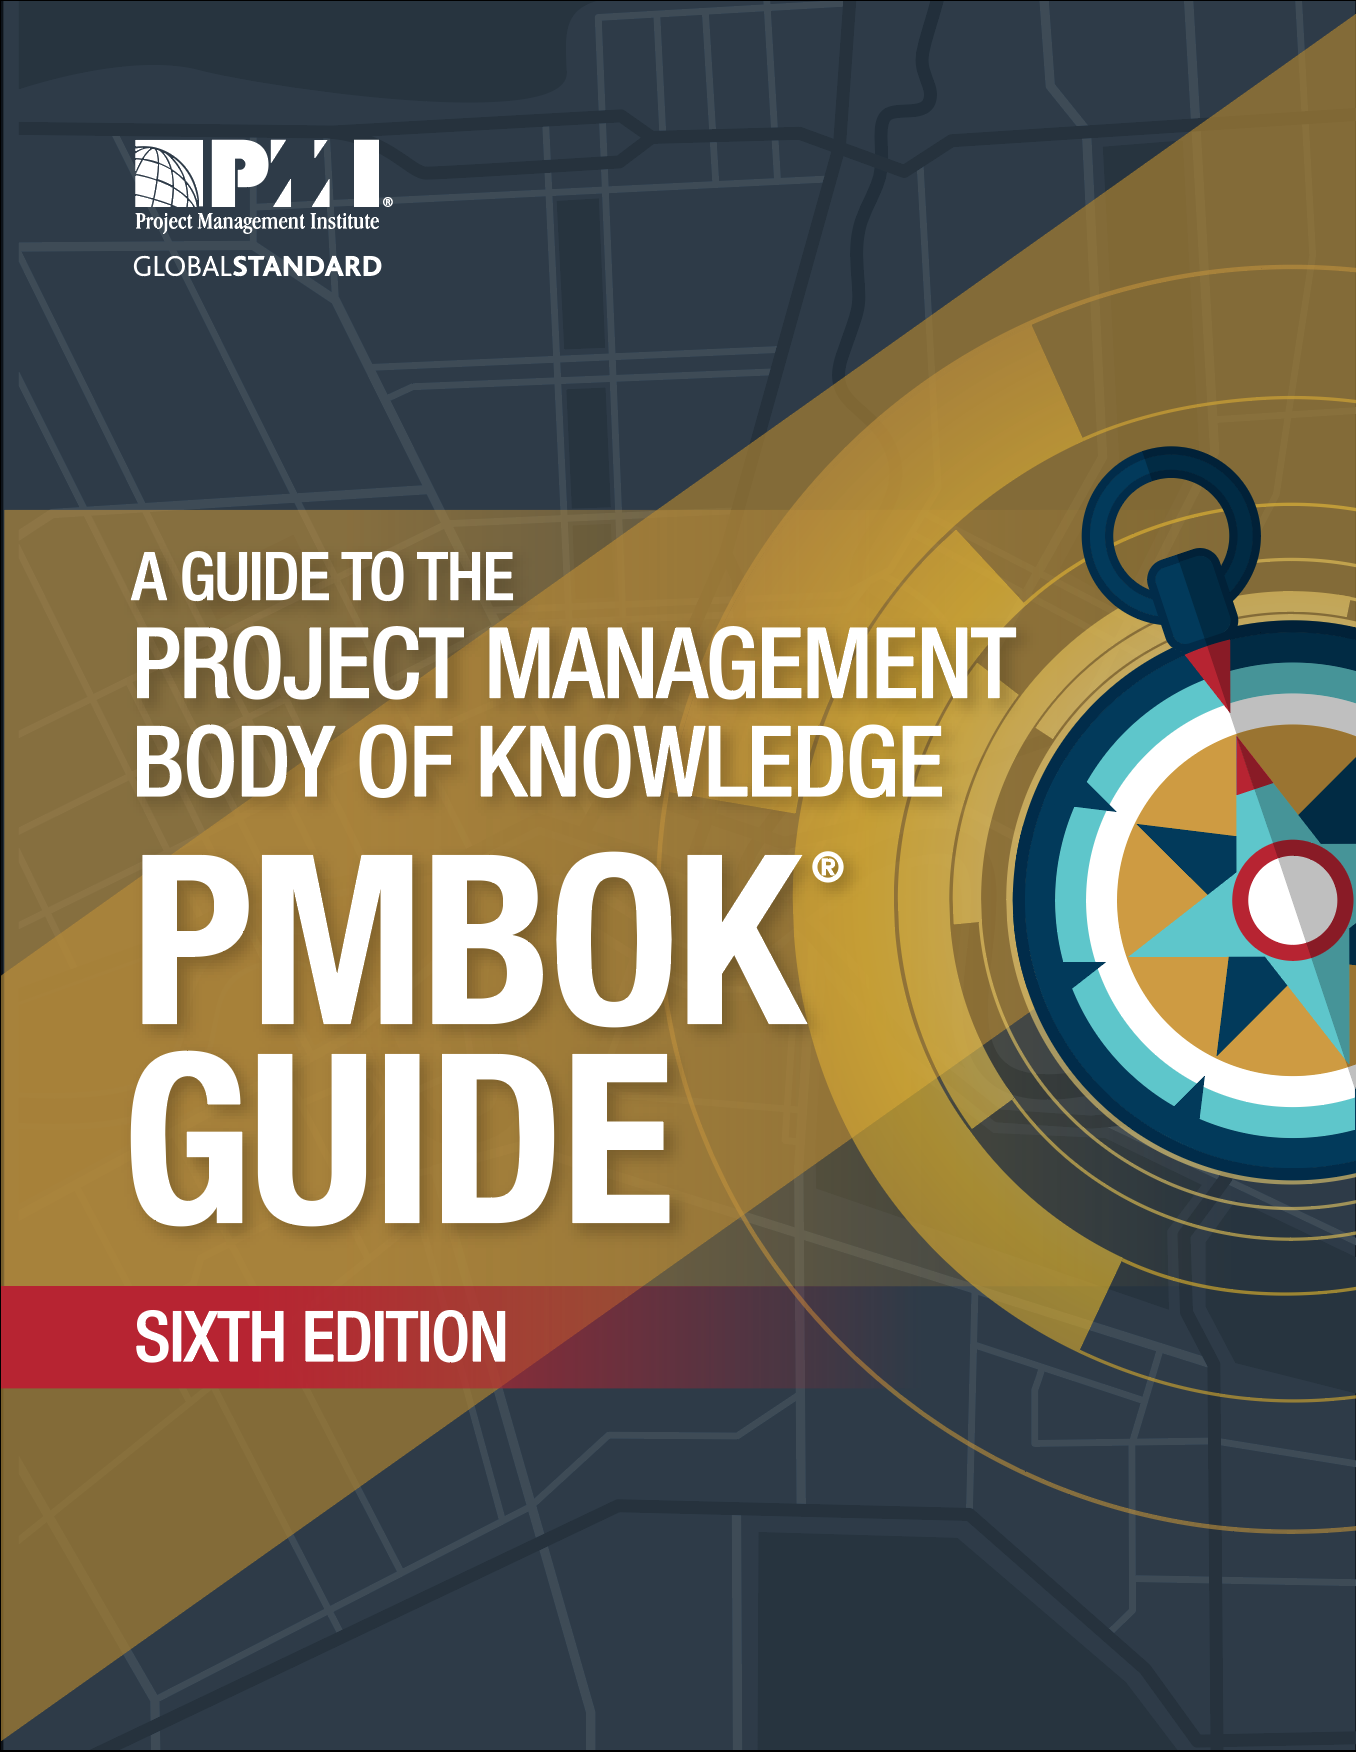 pmbok guide 6th edition.jpg